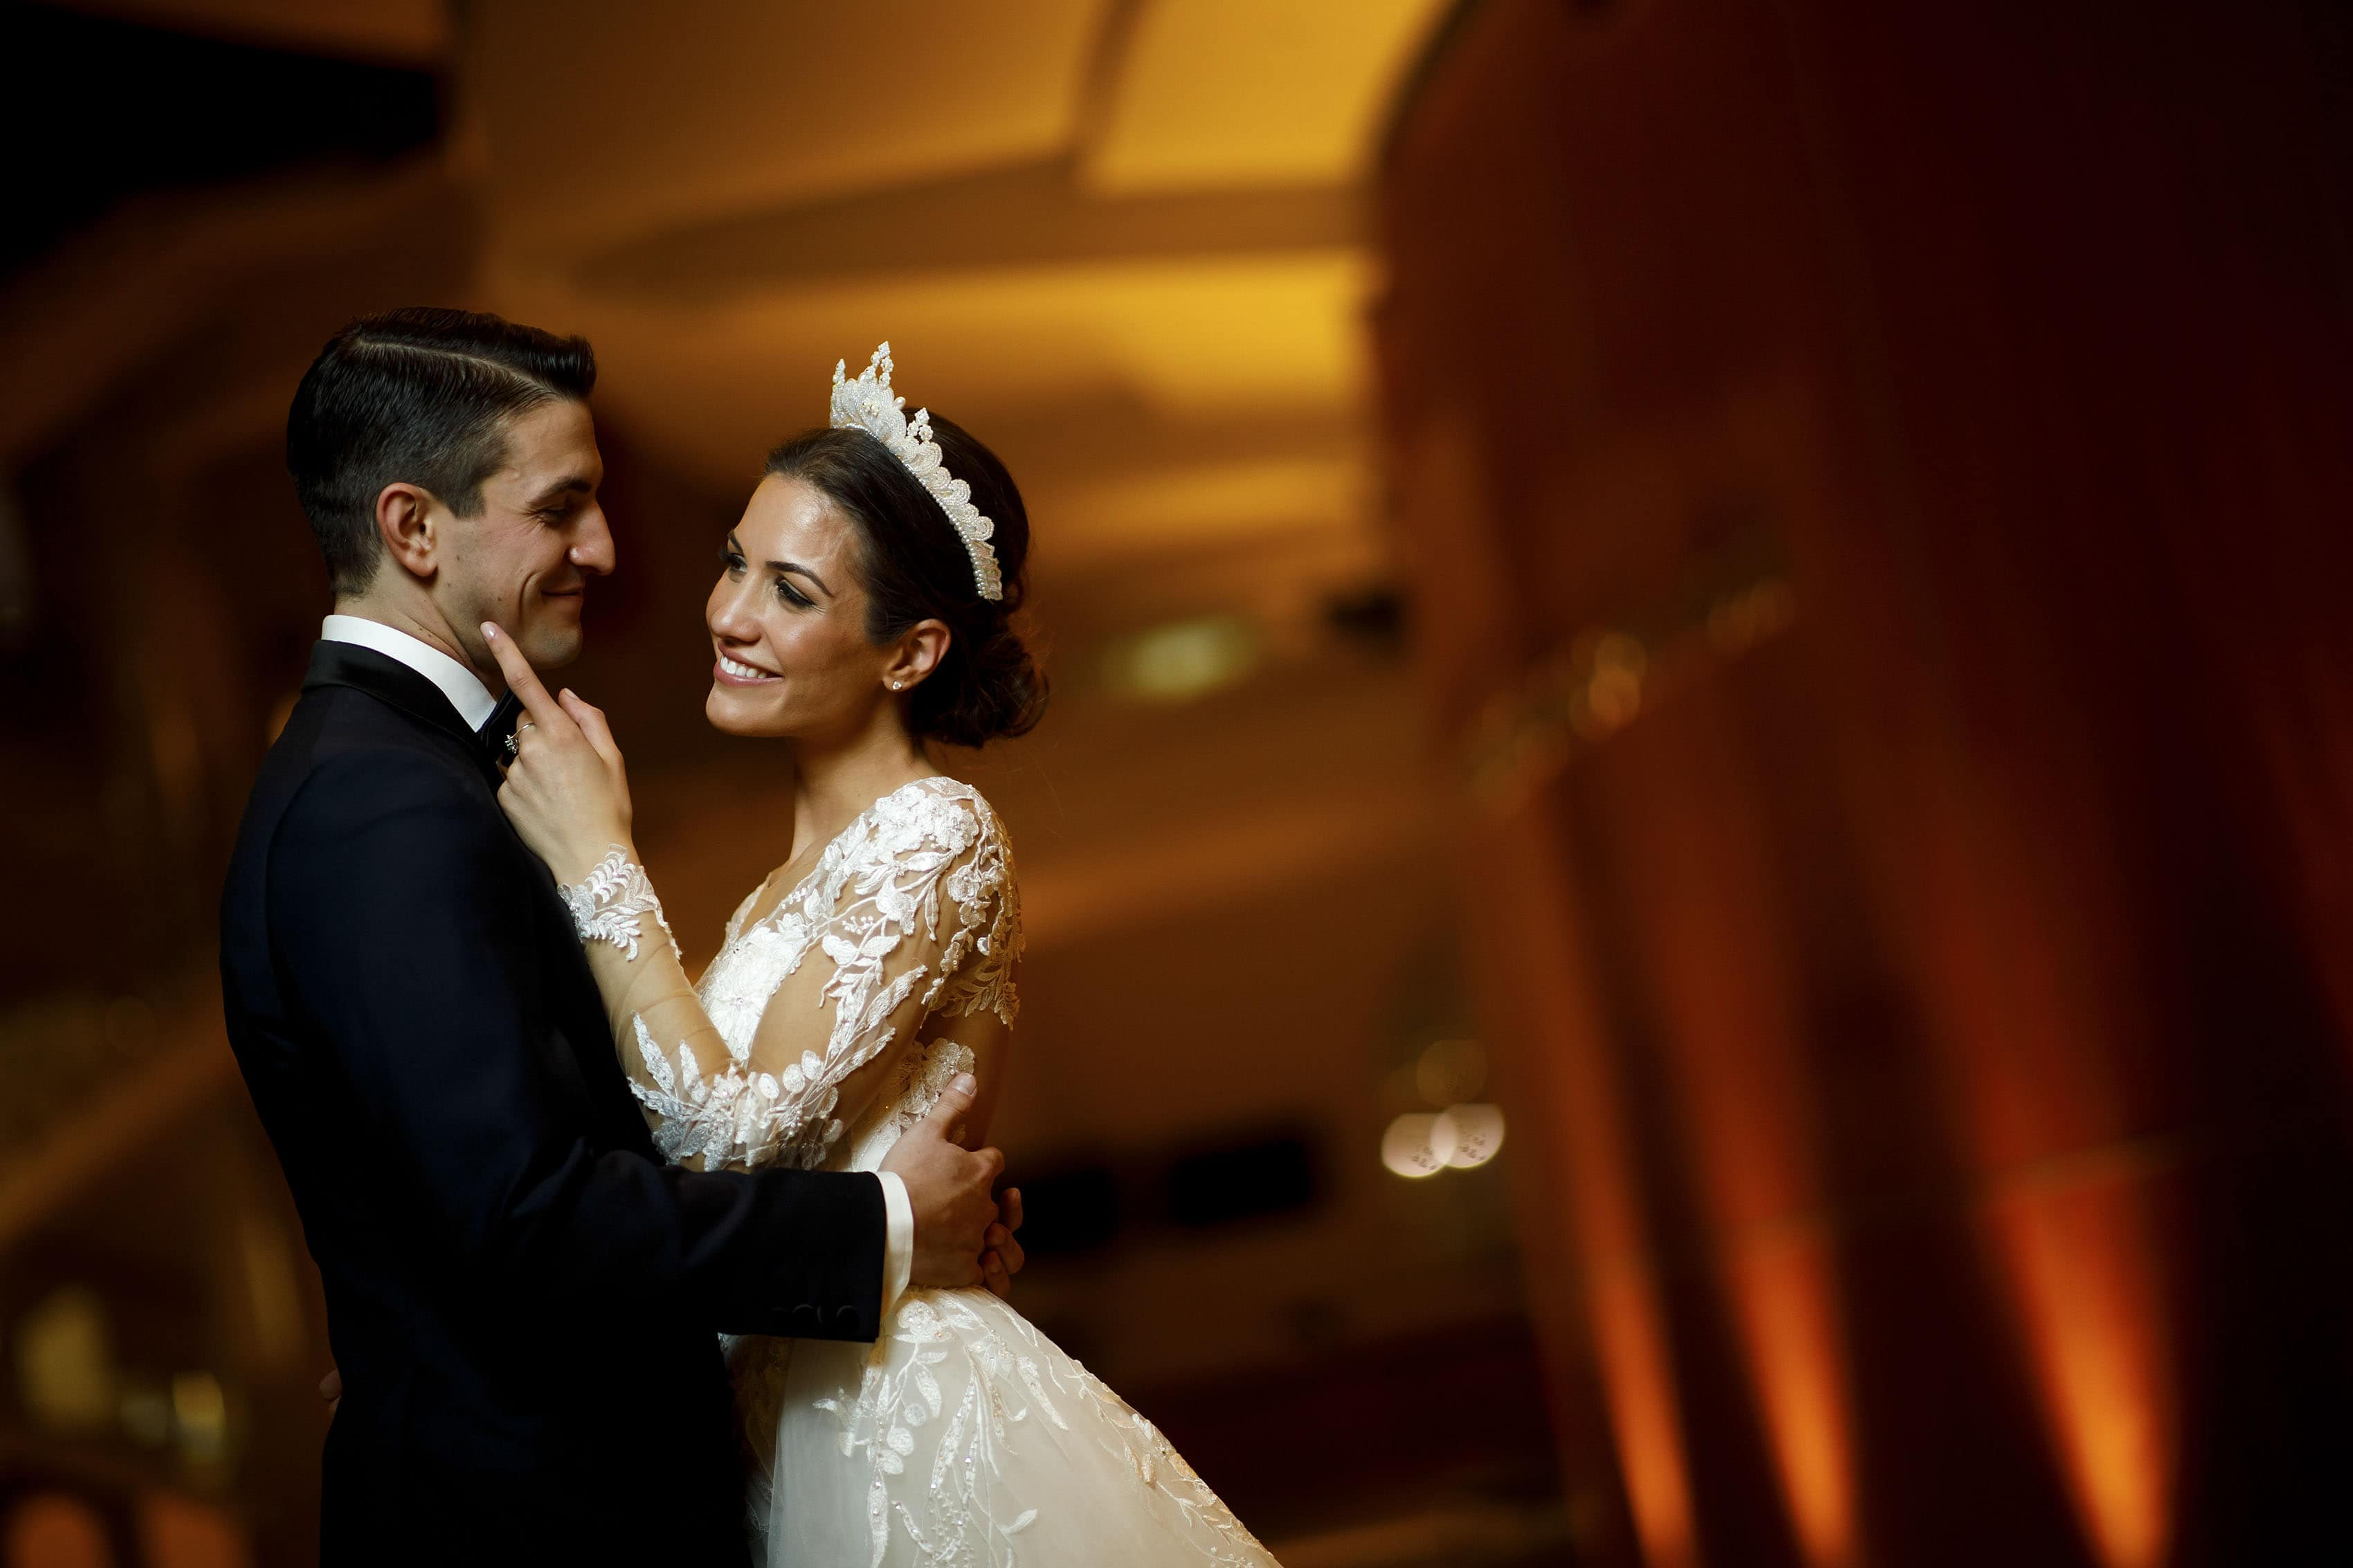 Ioanna and Alex share a moment together during their wedding day in the Ellie Caulkins Opera House Lobby at the Denver Center for the Performing Arts